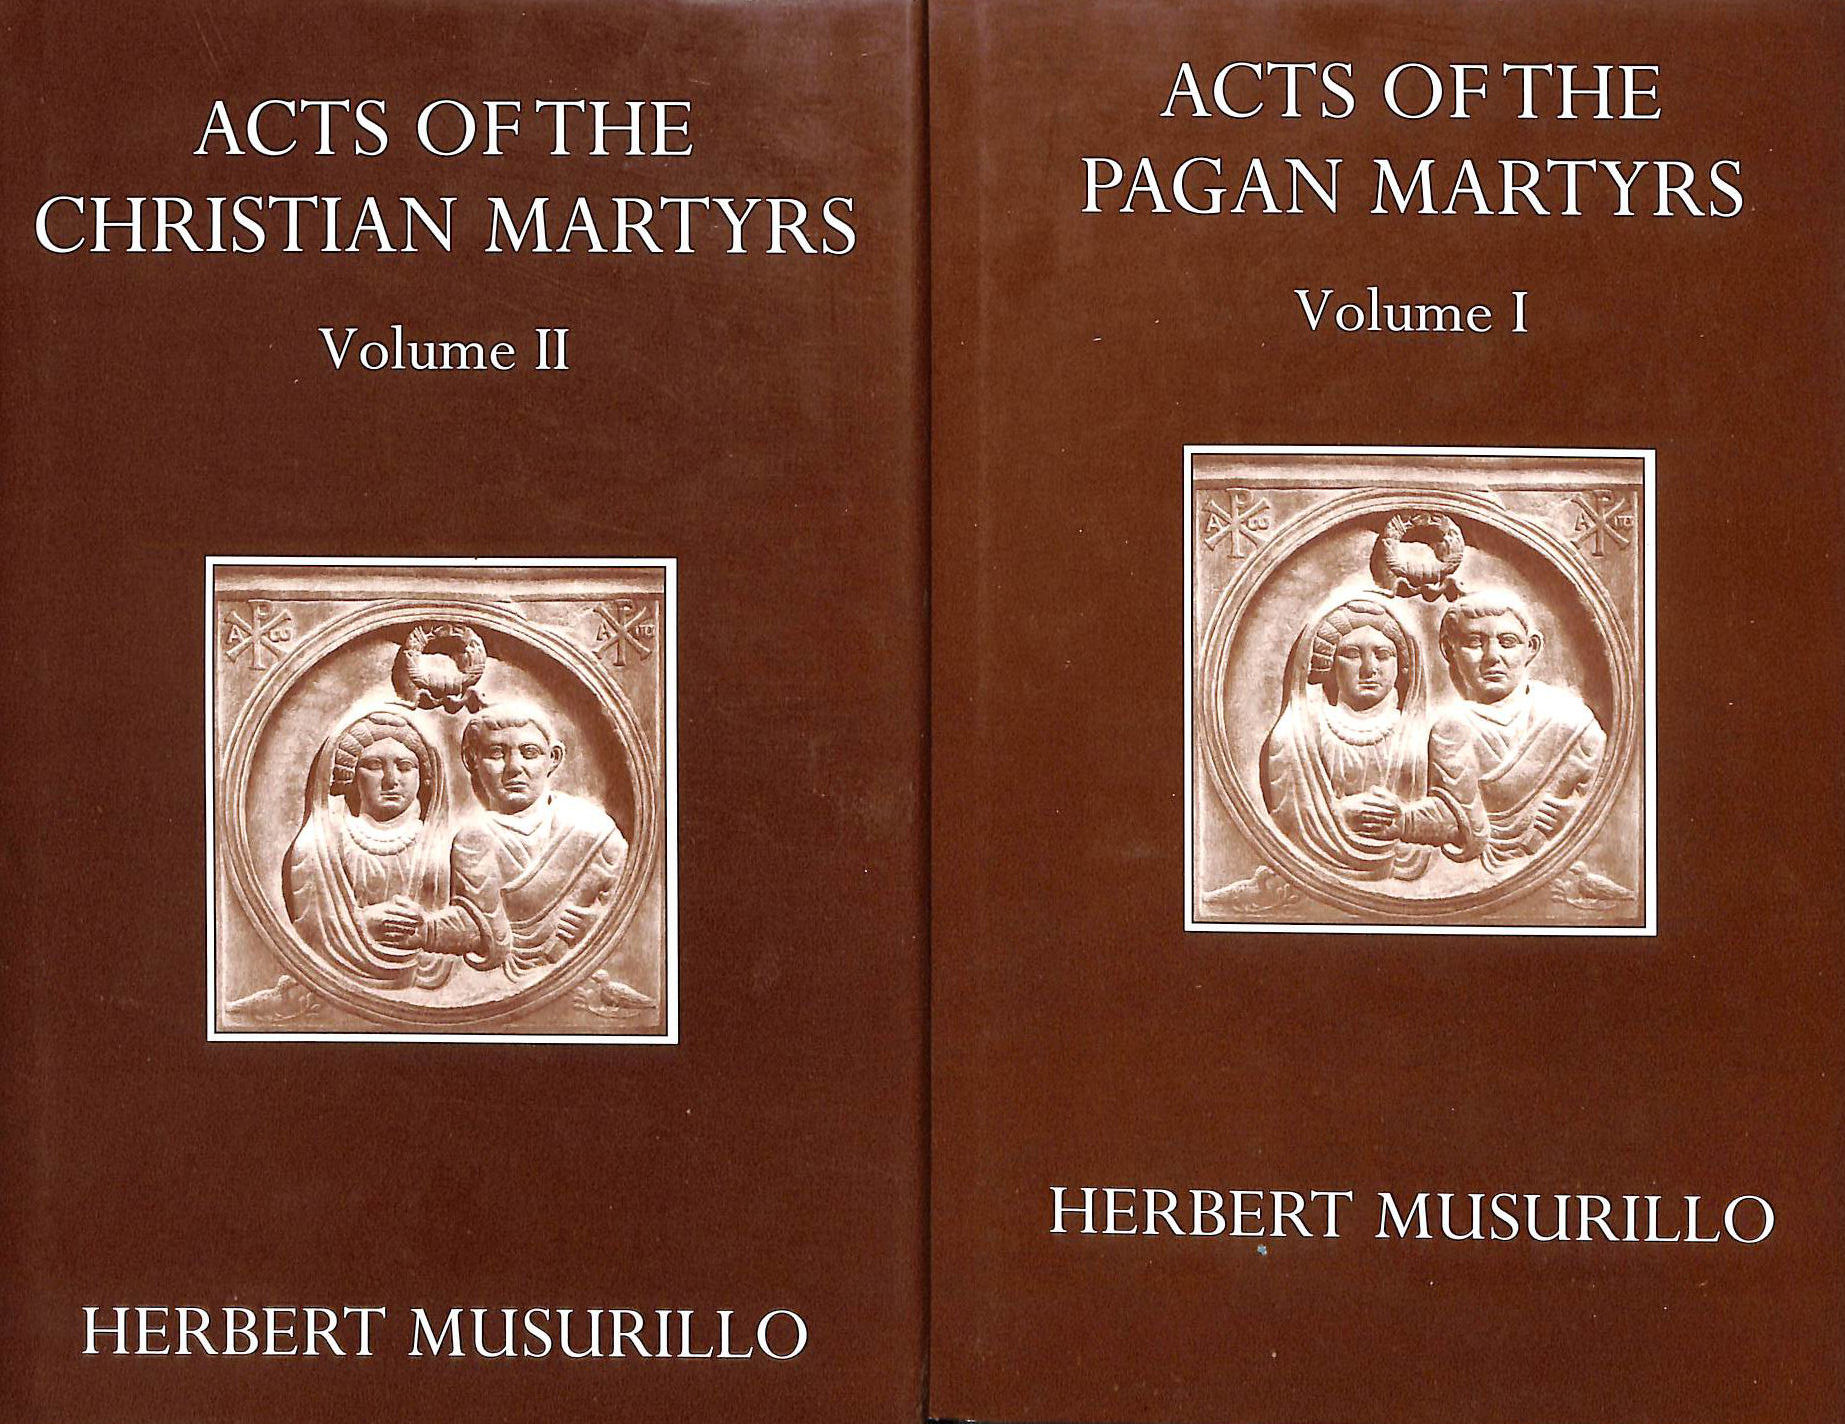 Image for The Acts of the Pagan Martyrs Volume I and the Christian Martyrs Vol. II (Oxford University Press academic monograph reprints)